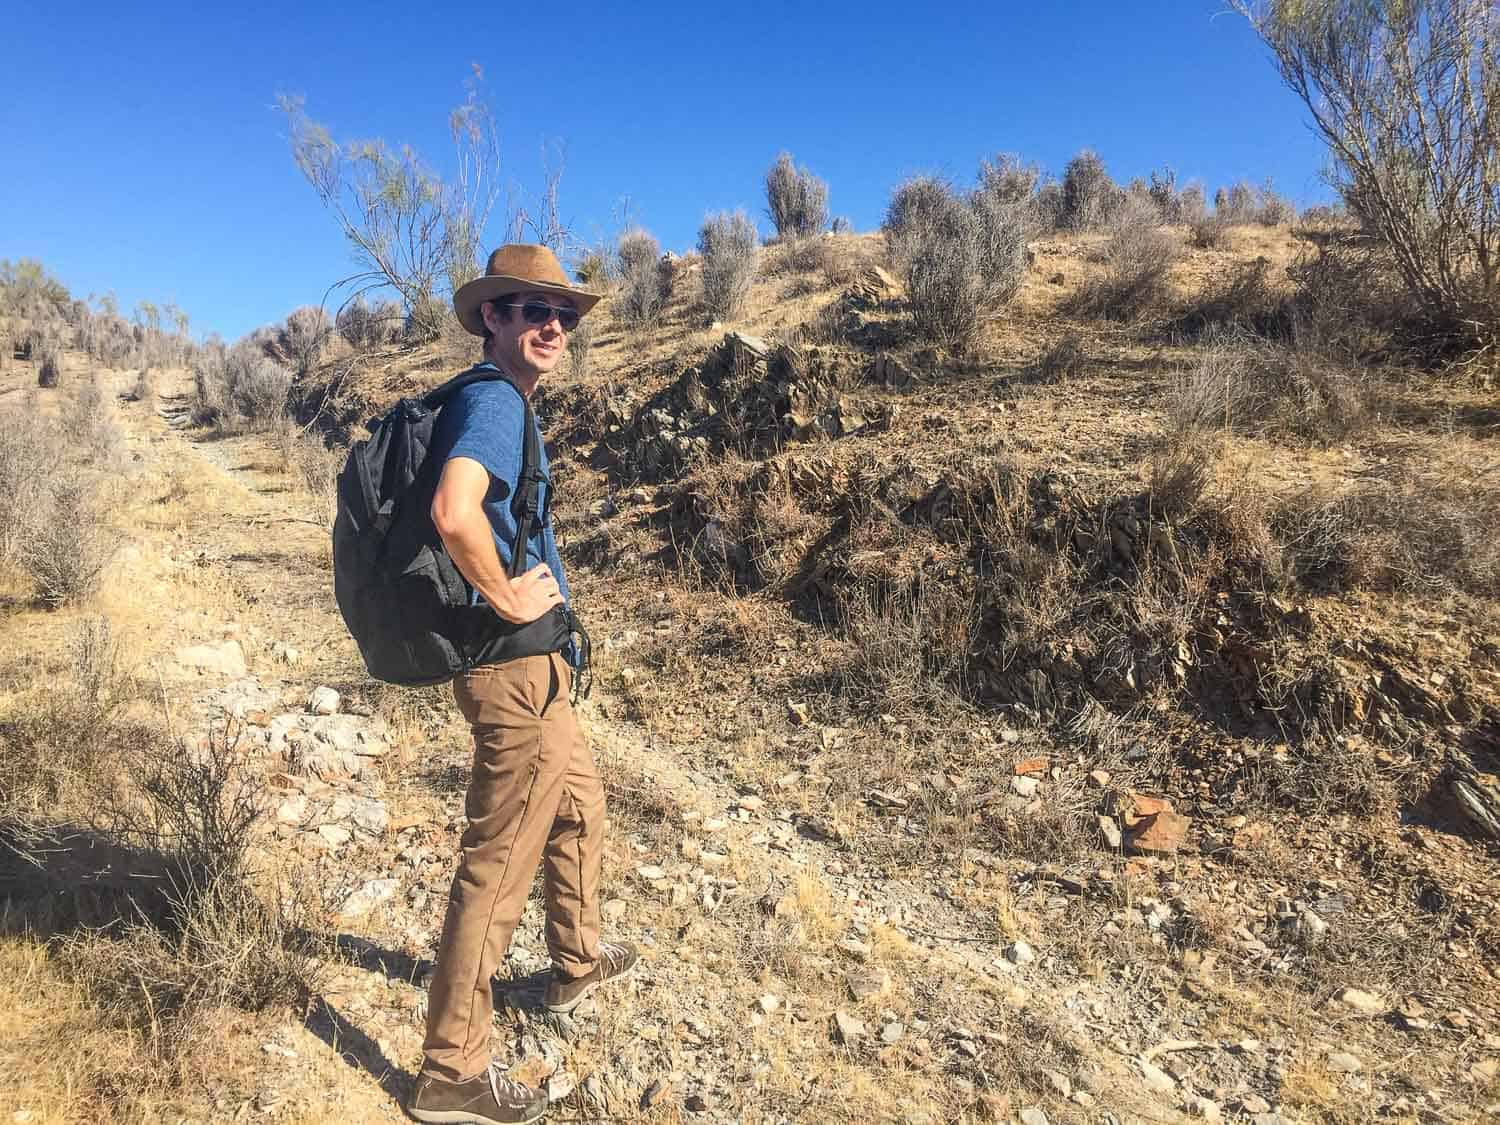 Bluffworks review - Bluffs are the best travel trousers for men. They combine the functionality of technical fabrics with a smart look.